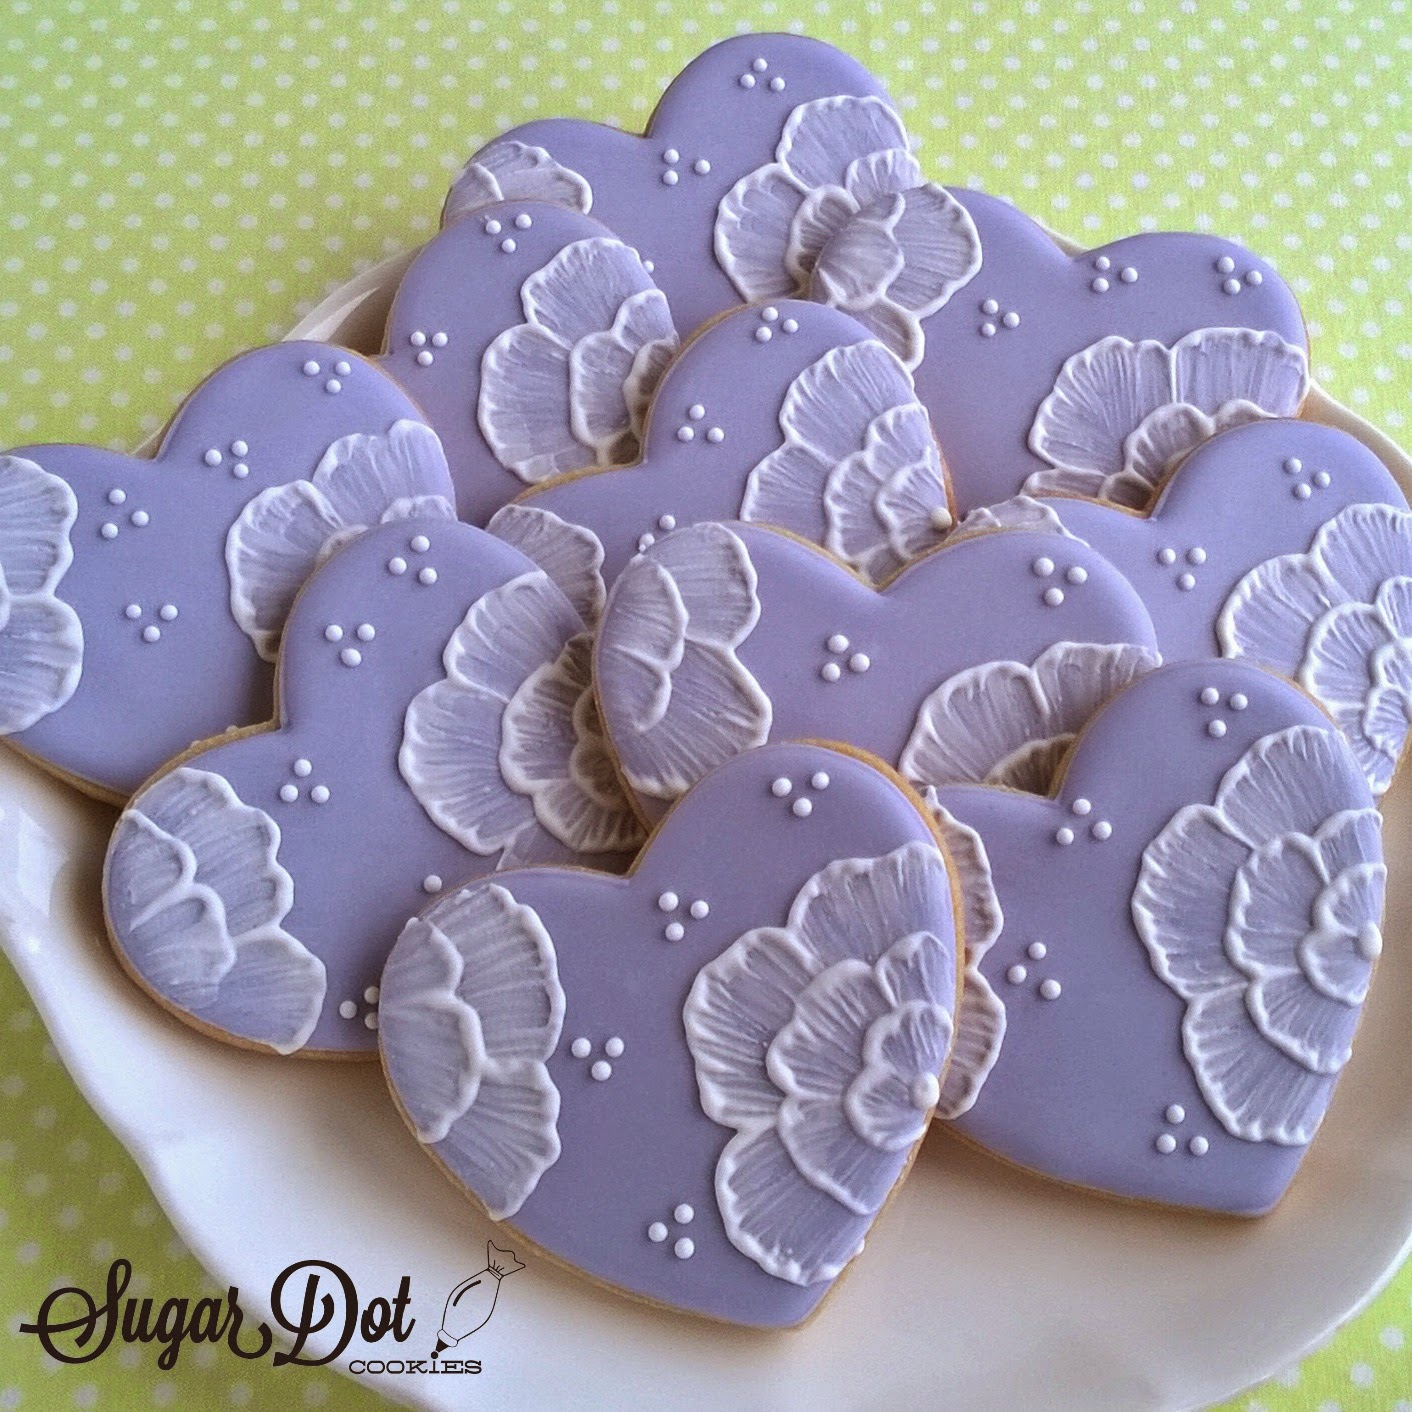 The flowers on these hearts were painted on with royal icing using a ...